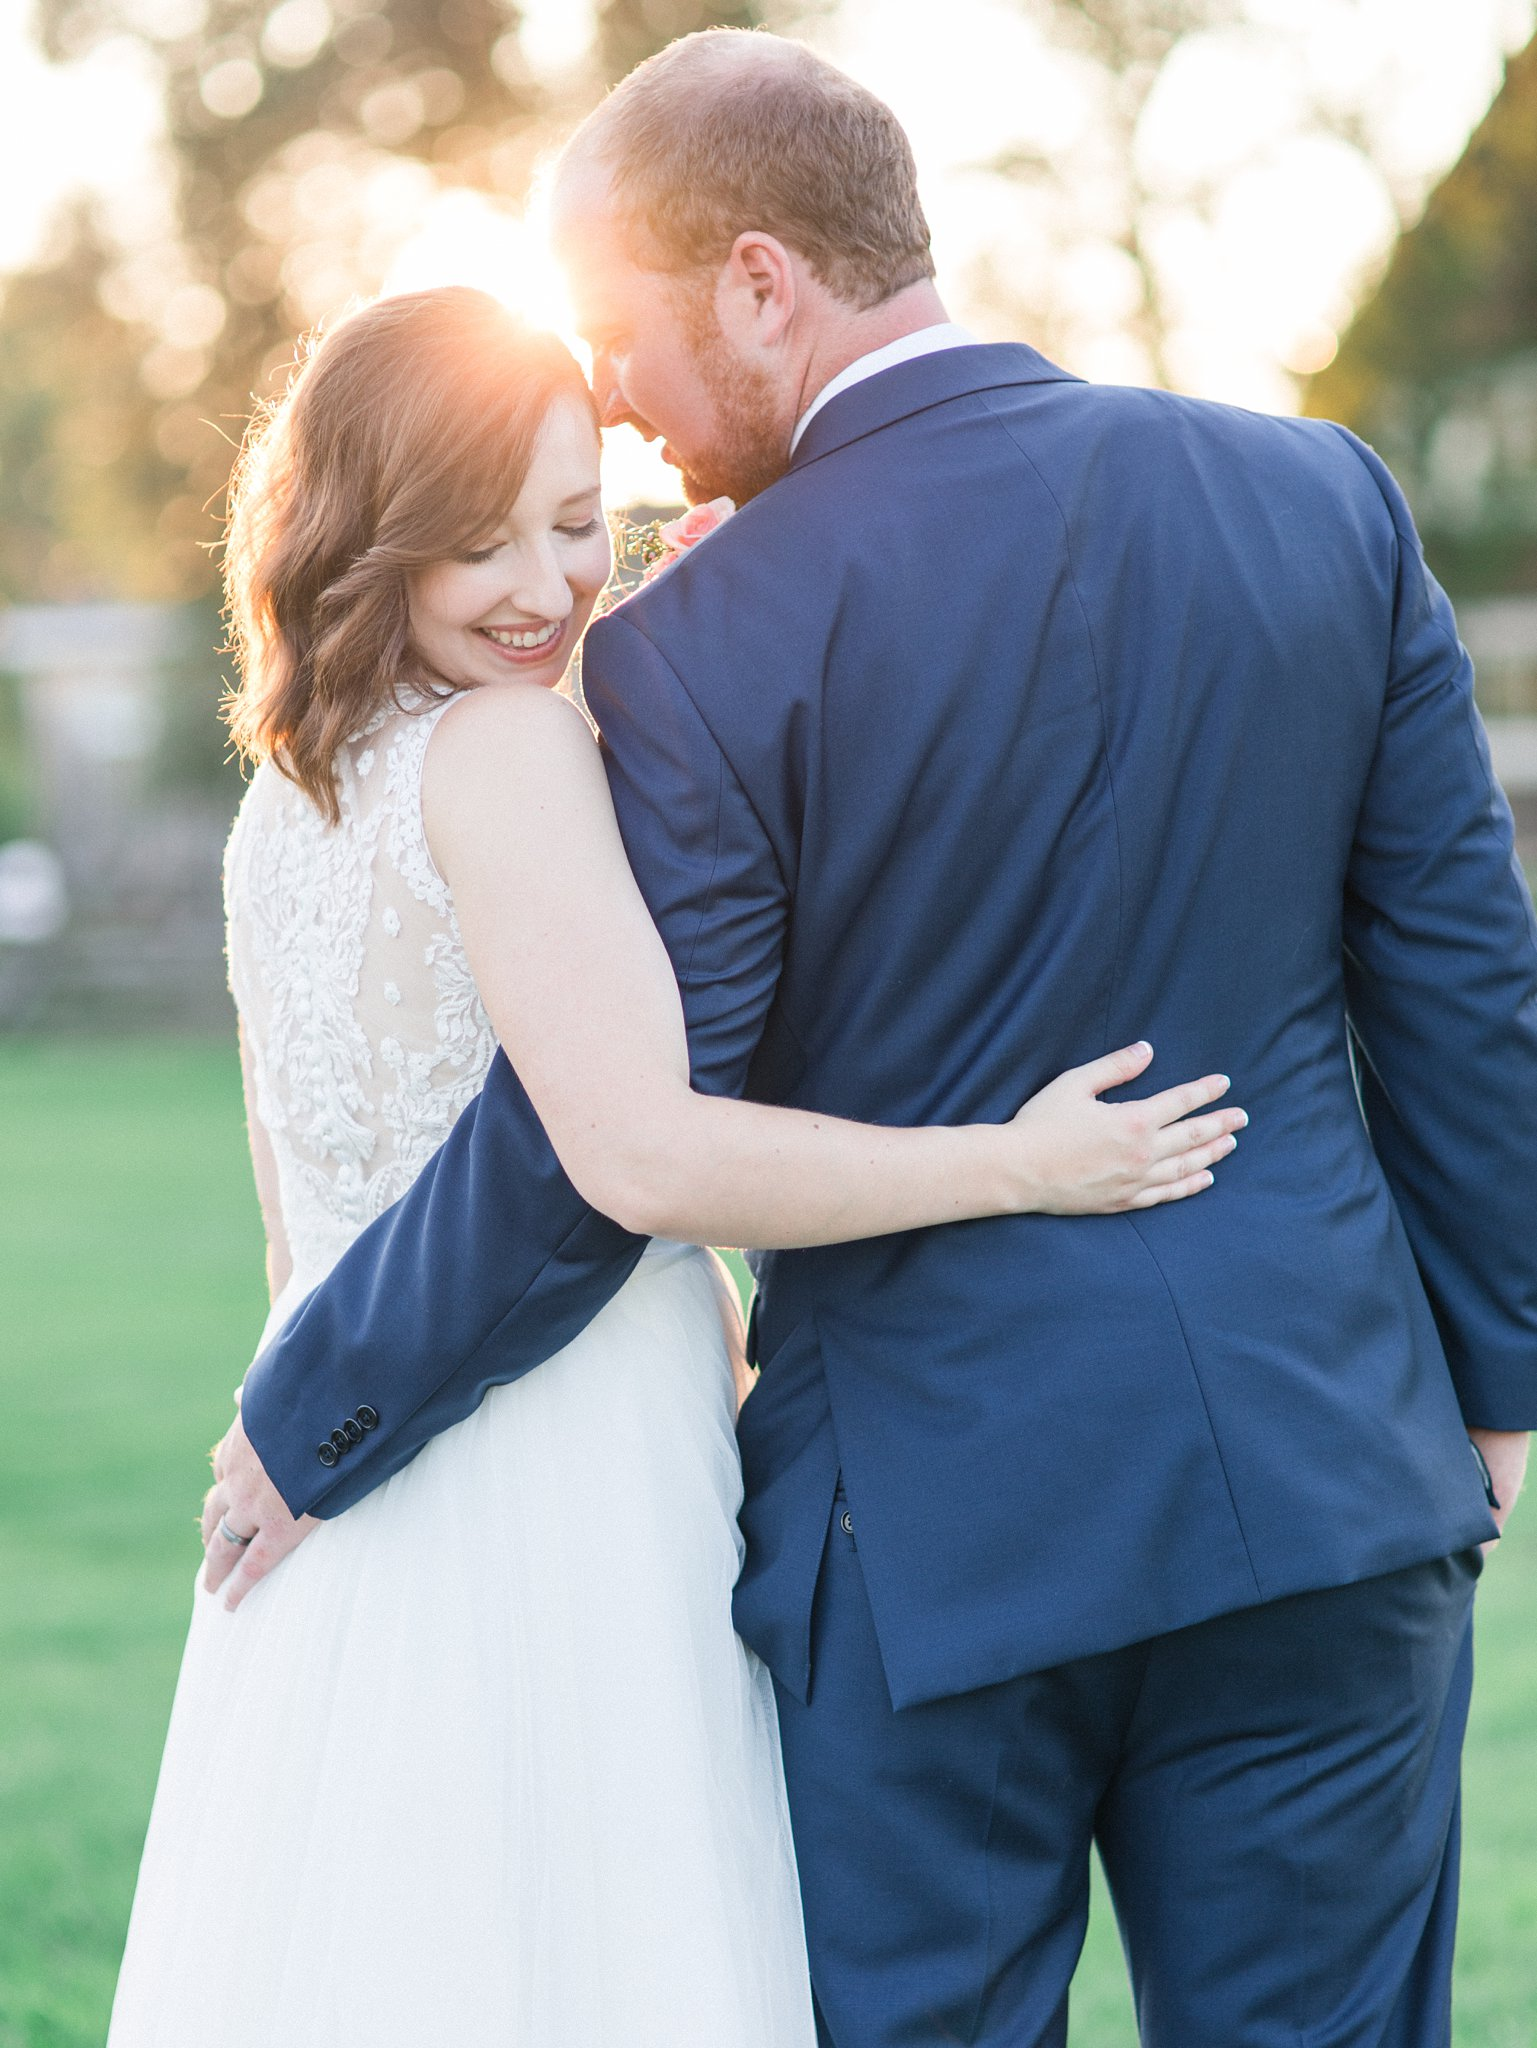 Sunset photo Dog-friendly wedding venue Ottawa Stonefields Amy Pinder Photography